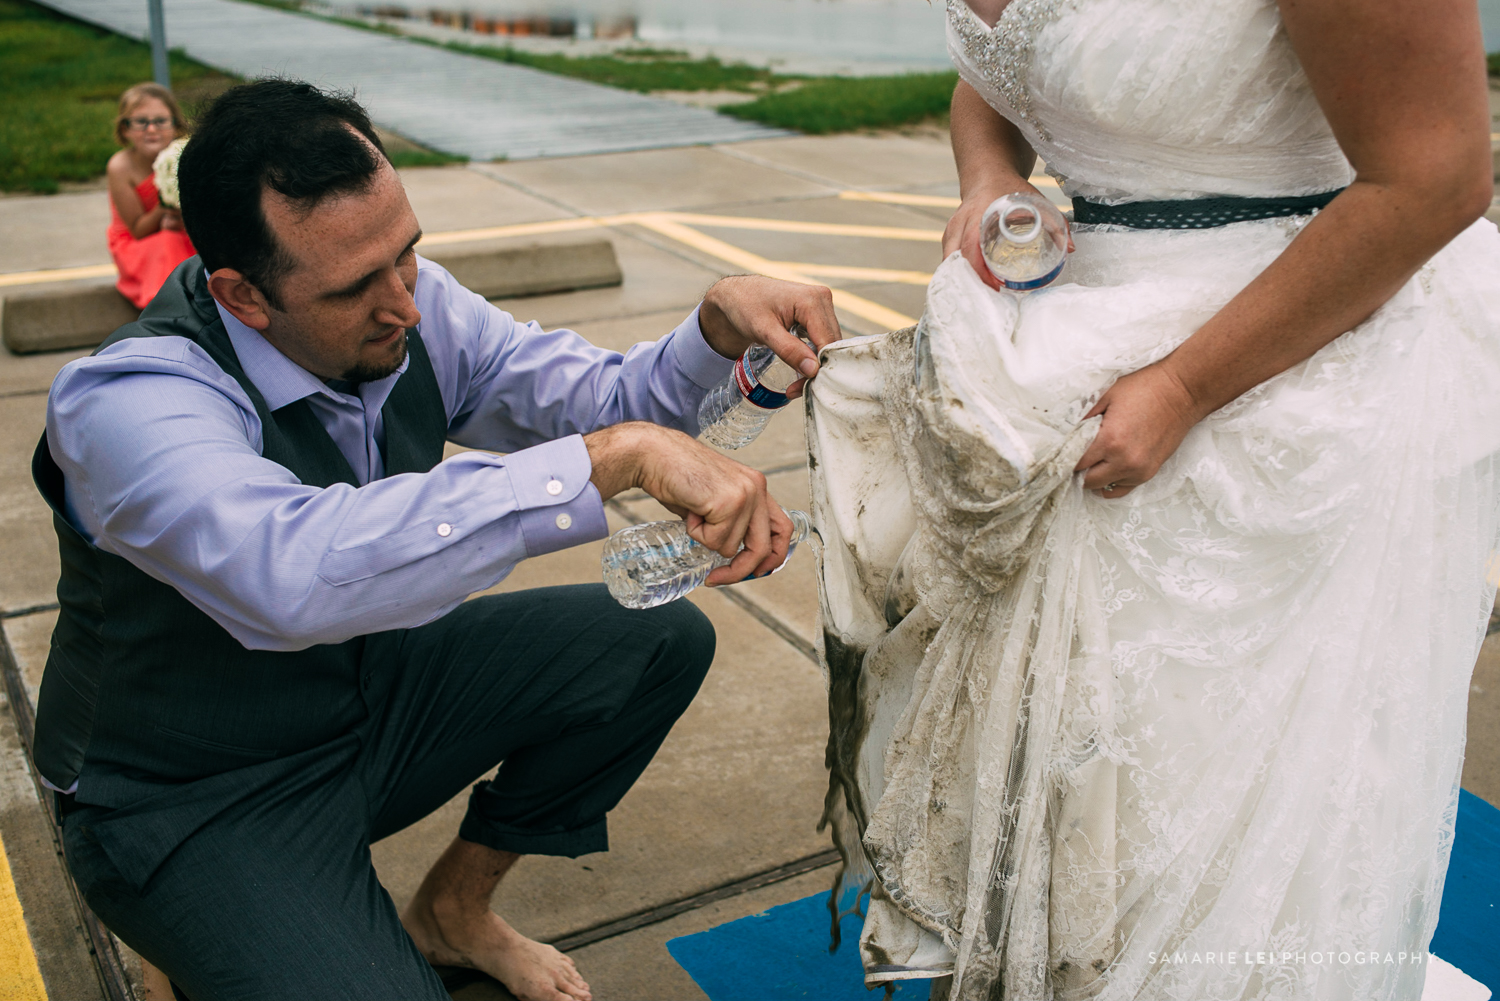 Galveston-elopement-houston-wedding-photographer-49.jpg